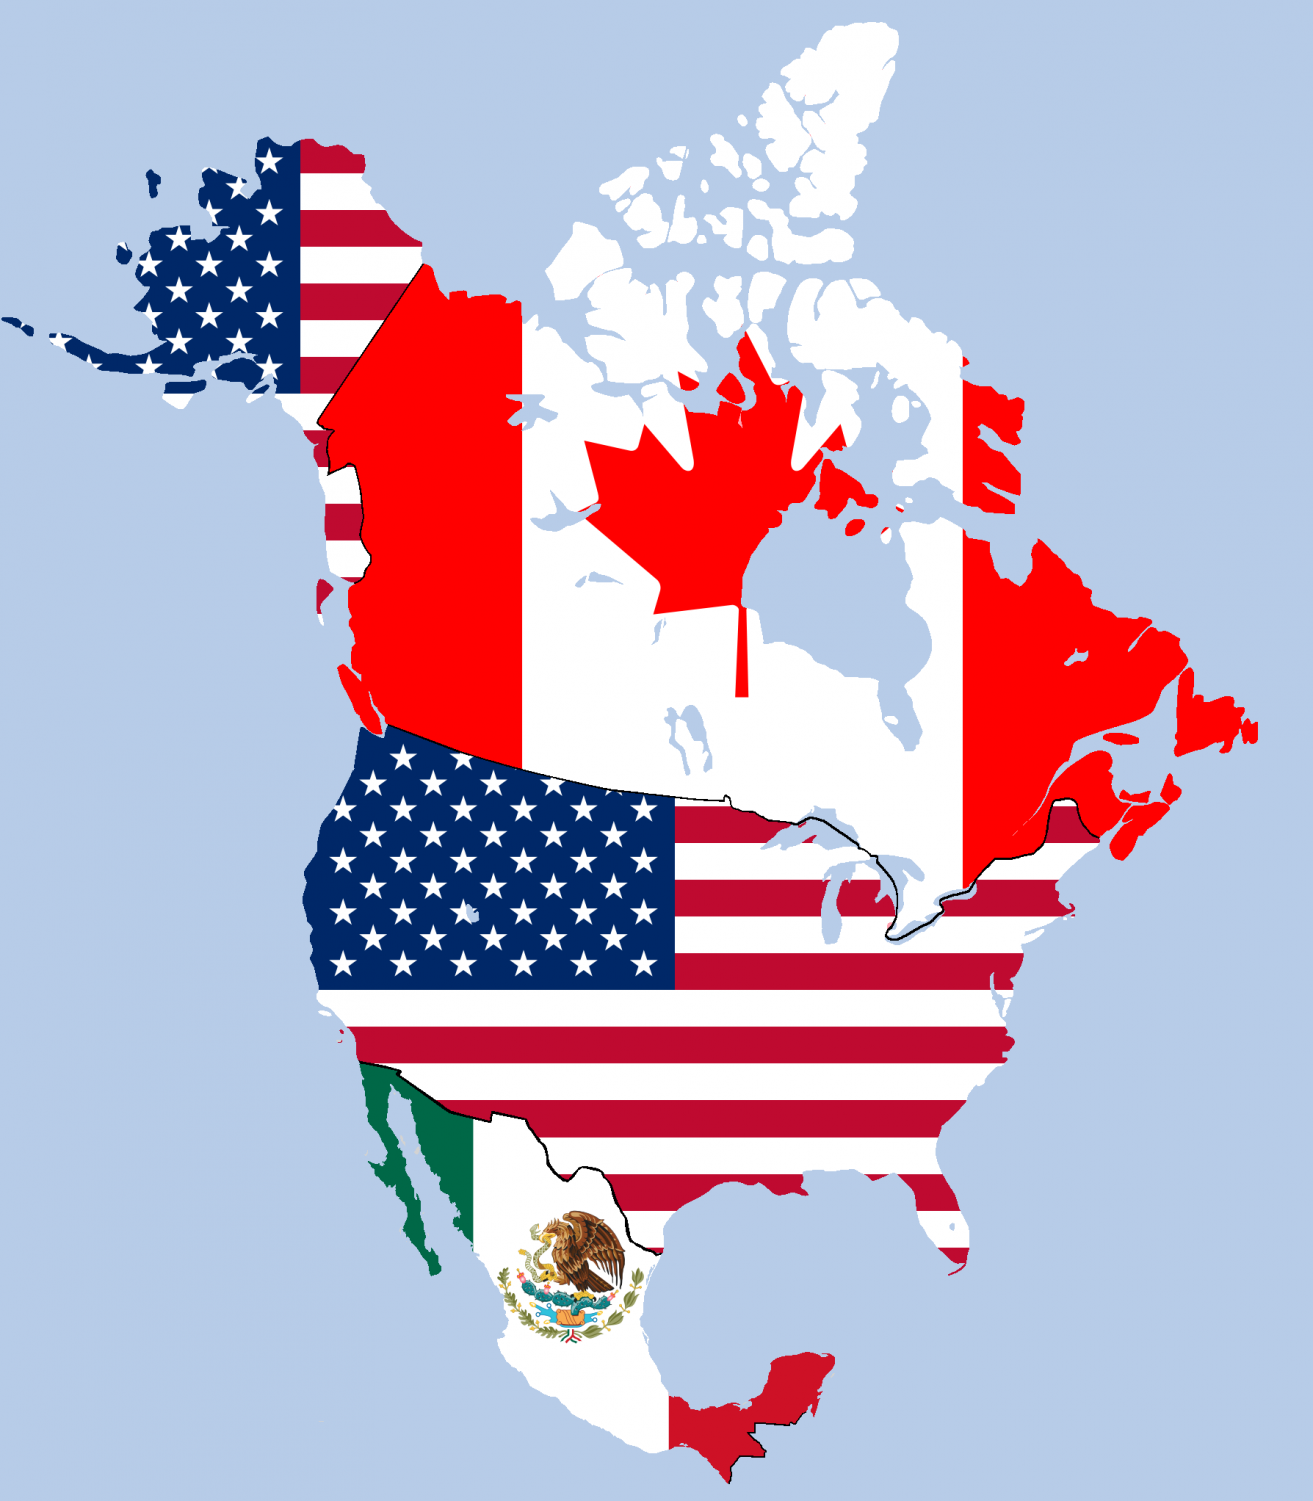 NAFTA, the North American Free Trade Agreement, is a free trade deal between Mexico, Canada, and the United States. Graphic courtesy of Wikimedia Commons